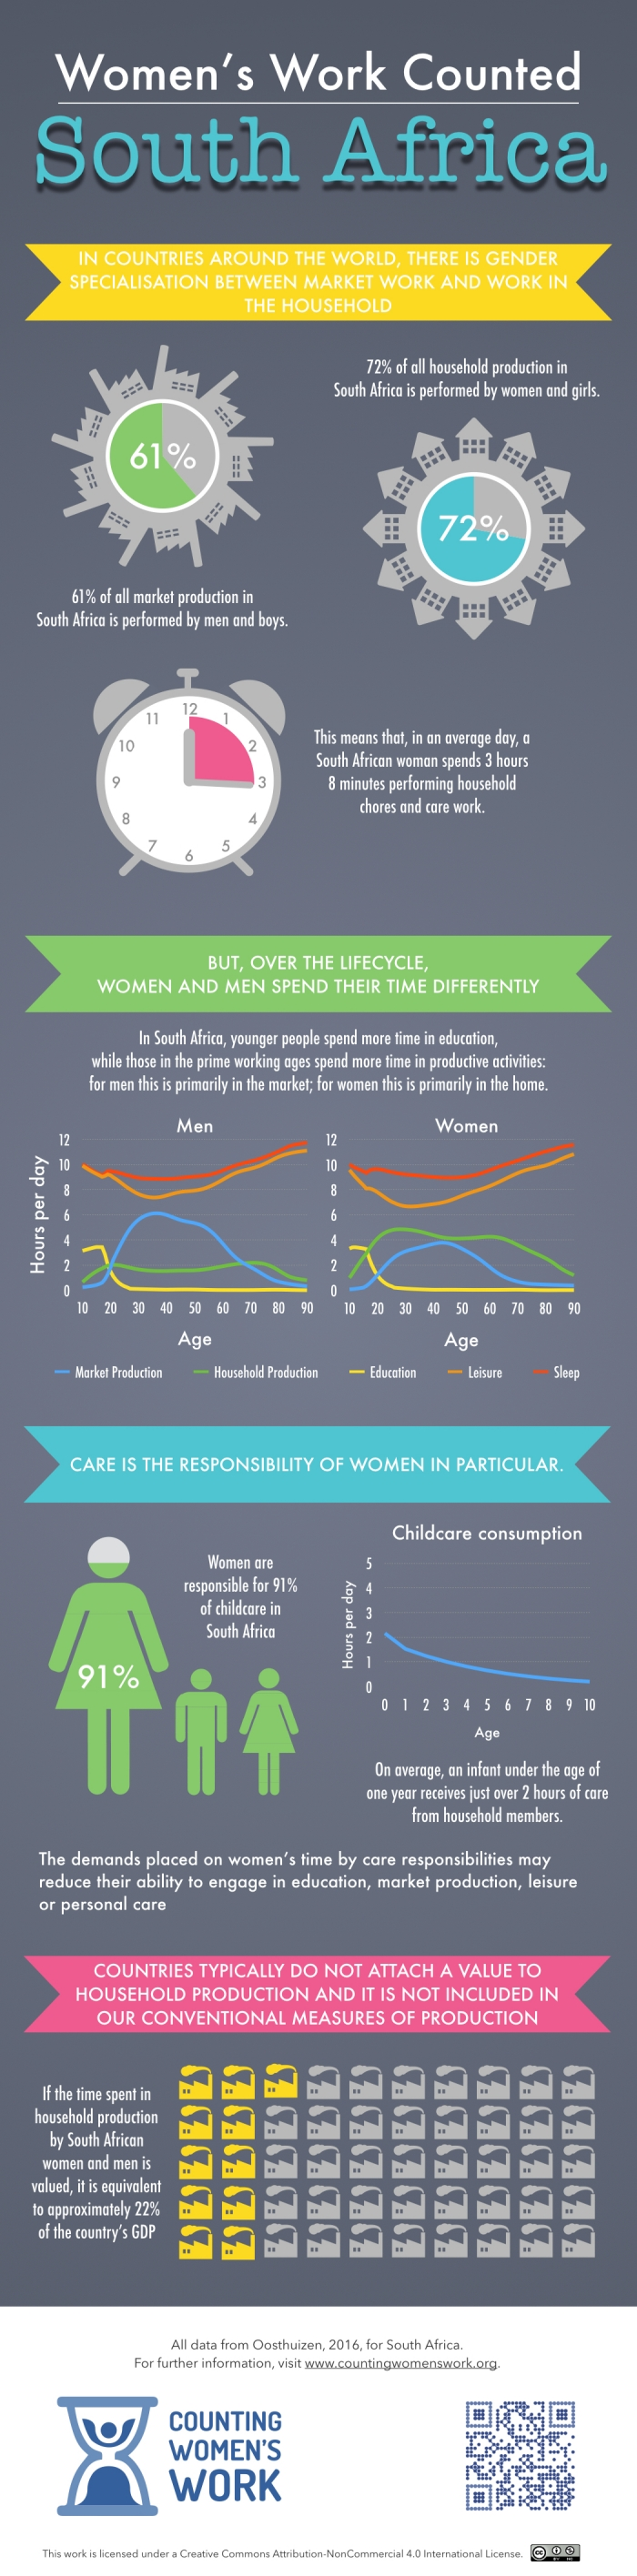 counting-womens-work-infographic-south-africa